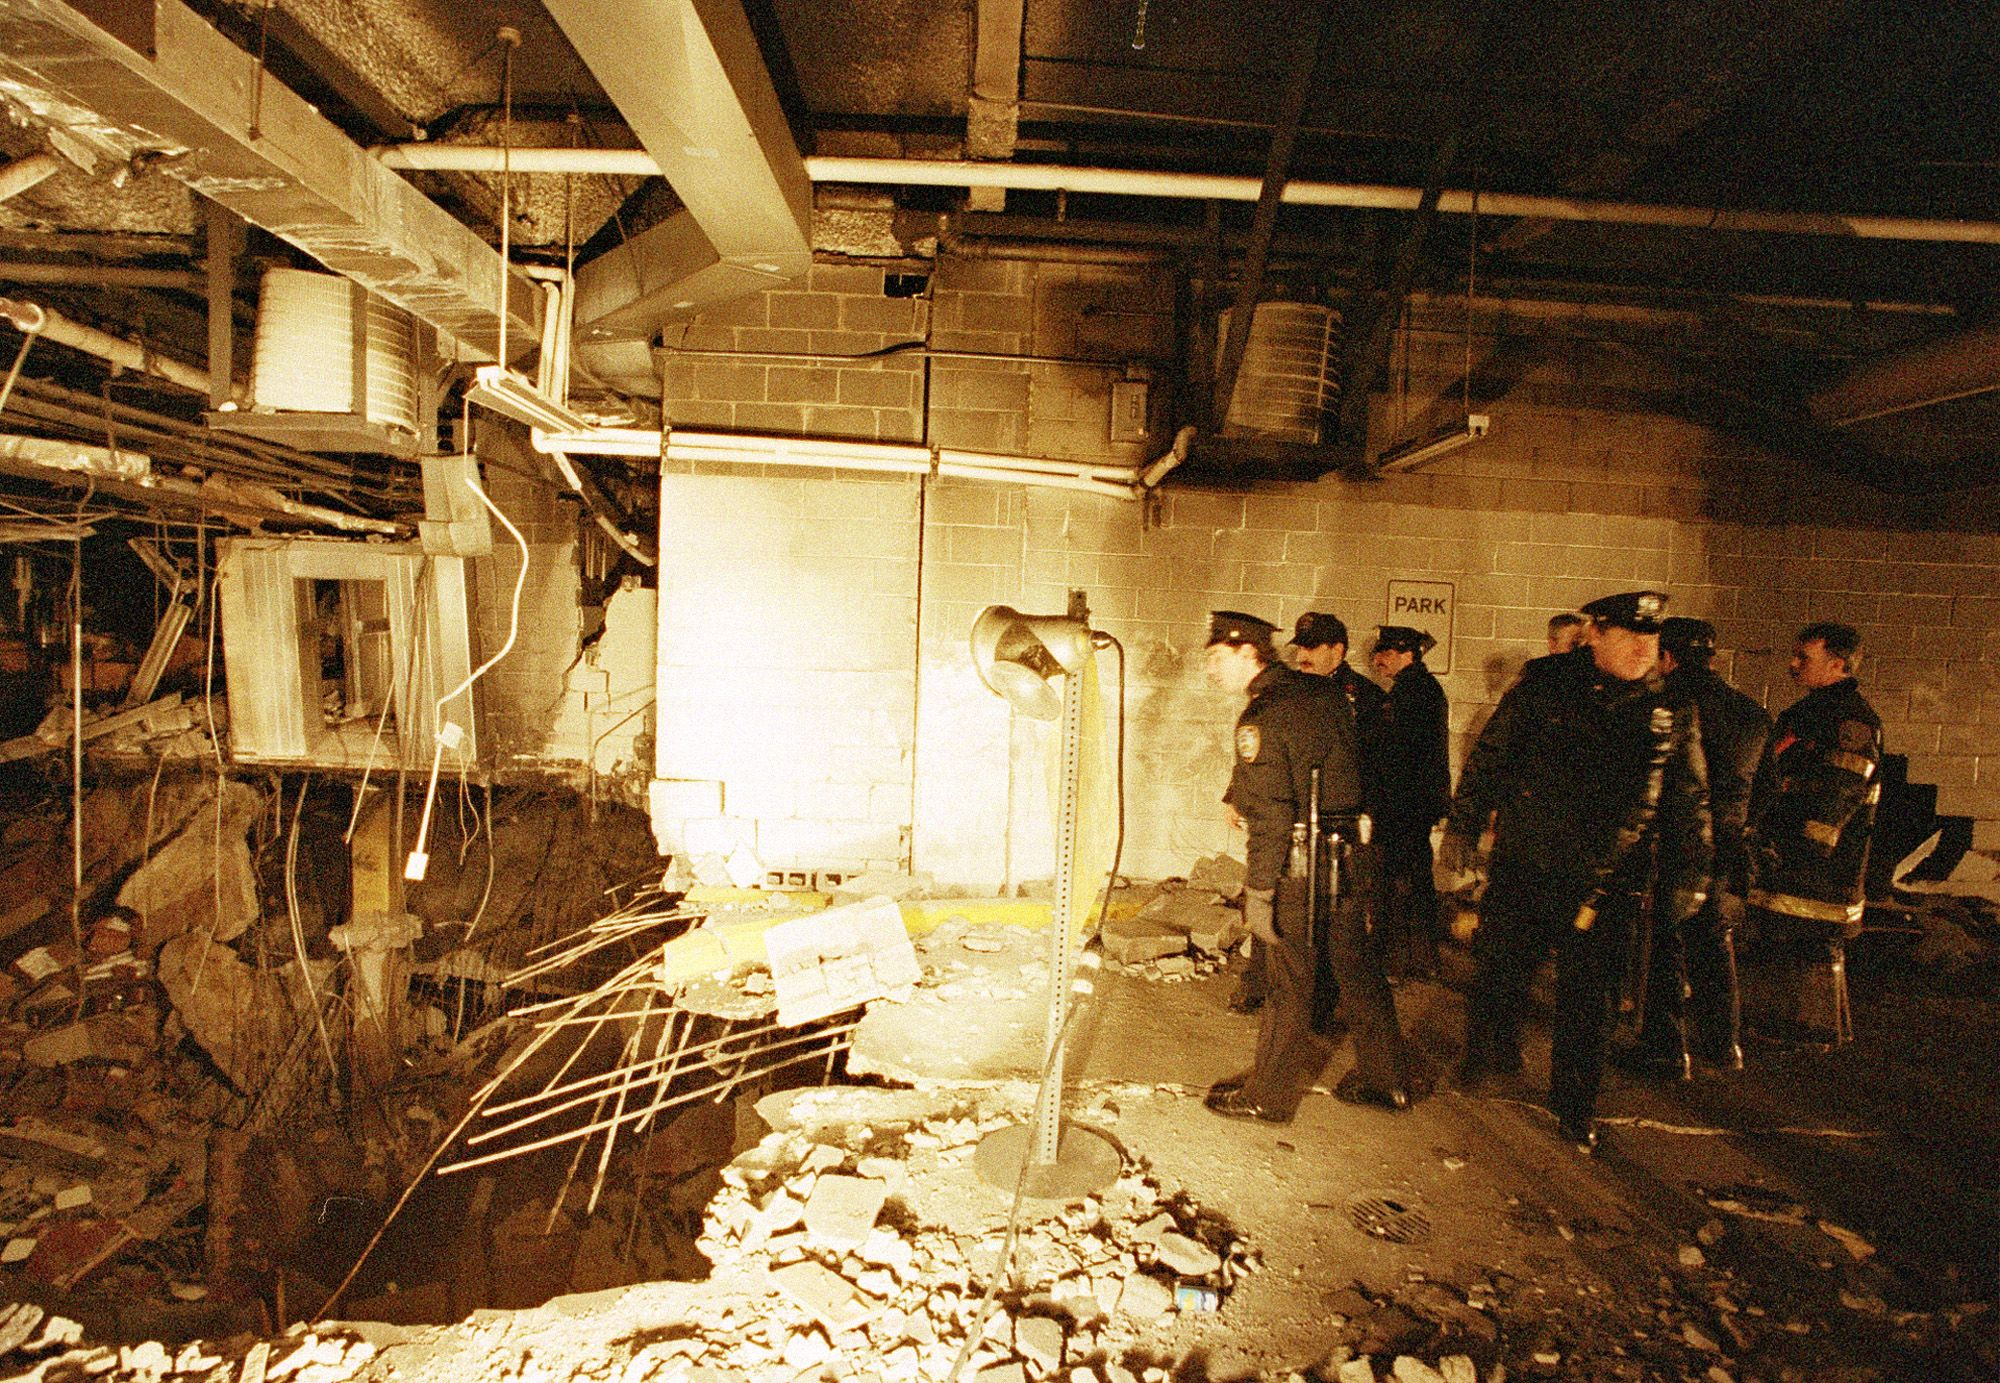 POlice officers and firefighters look at a huge crater in the parking garage